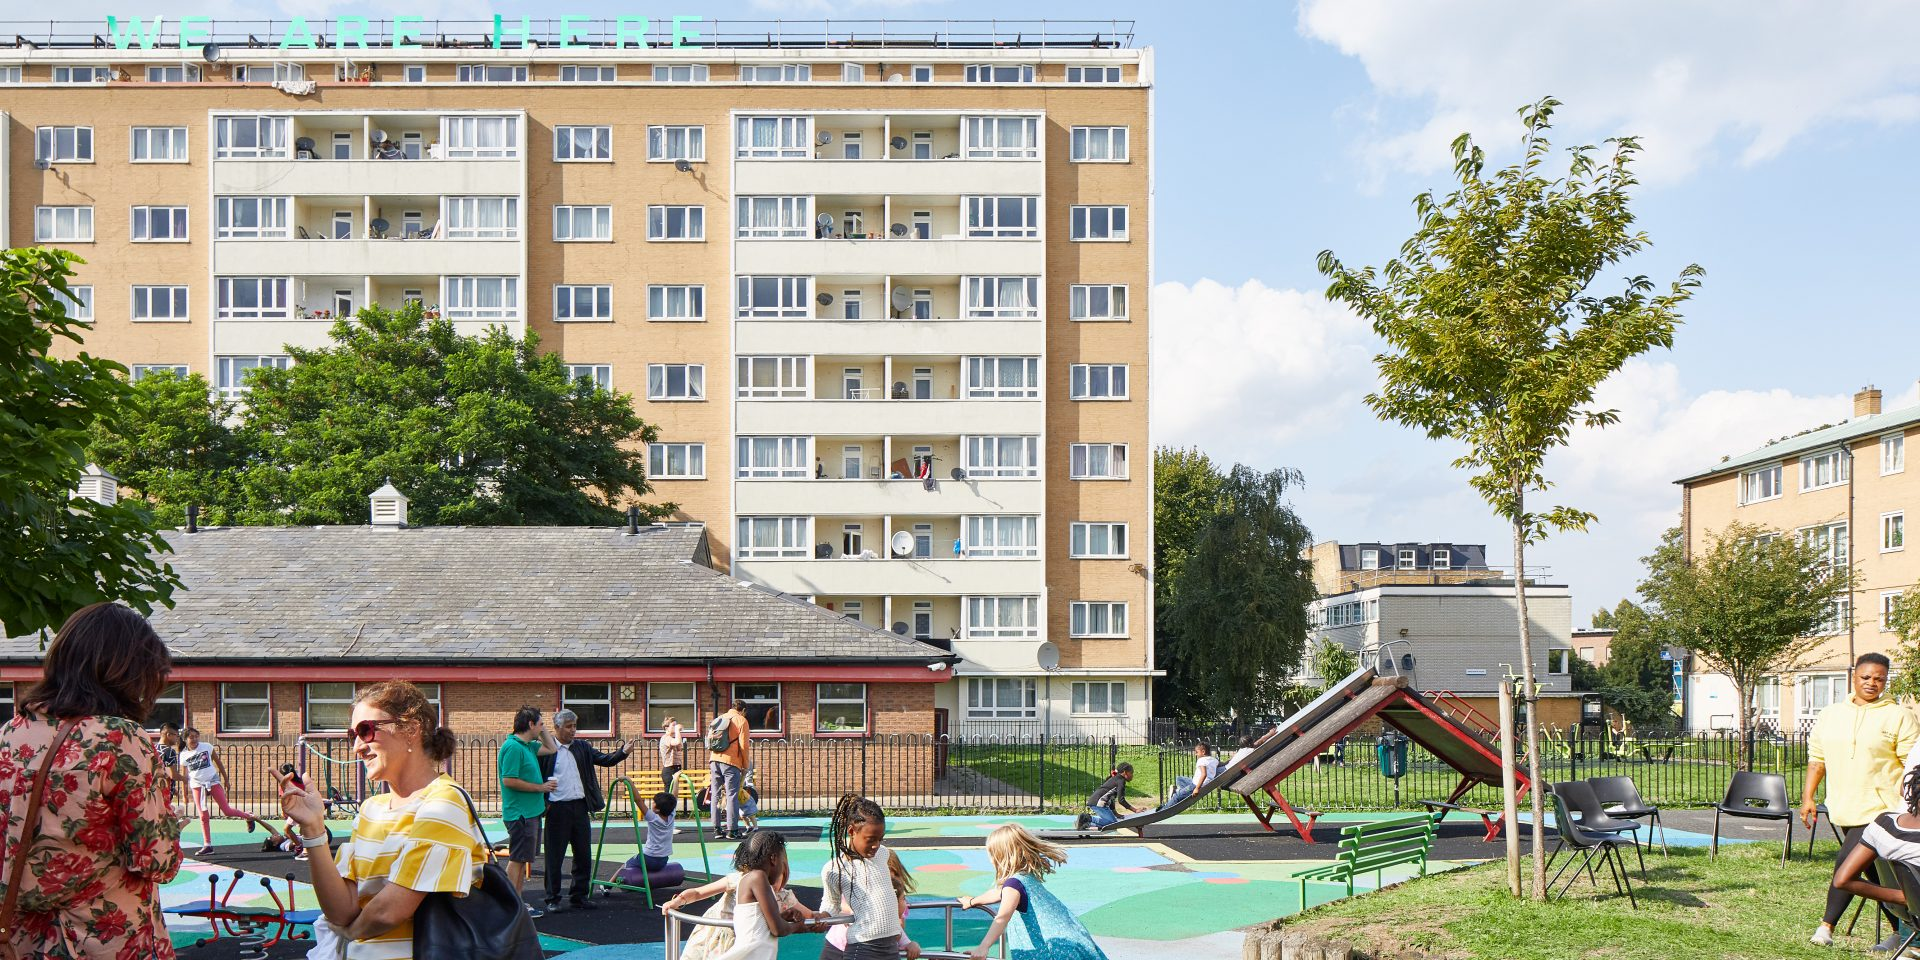 Text work 'WE ARE HERE' on top of block of flats; children playing in playground, with brightly painted surface